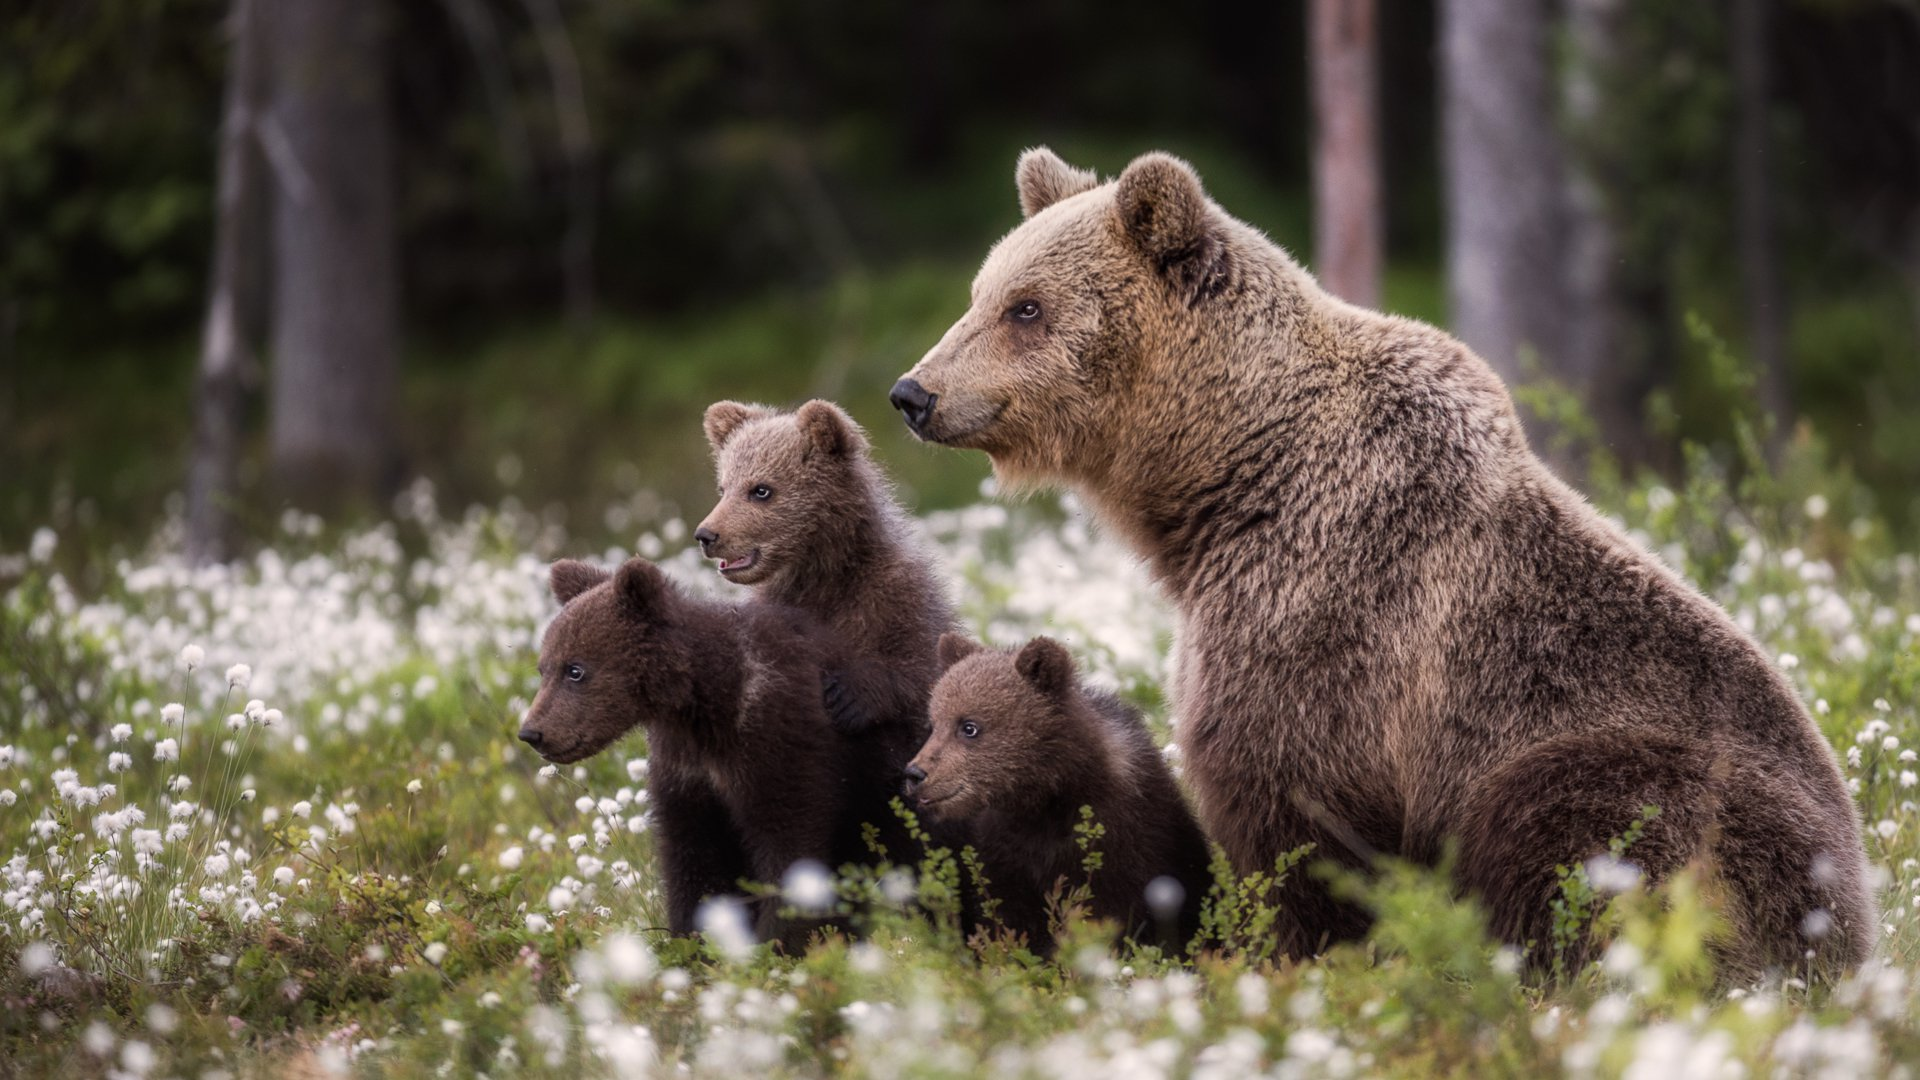 Bear Family, © Dmitry Arkhipov, Russian Federation, Campina Exhibitions Silver Medal, Onyx International Exhibition of Photography